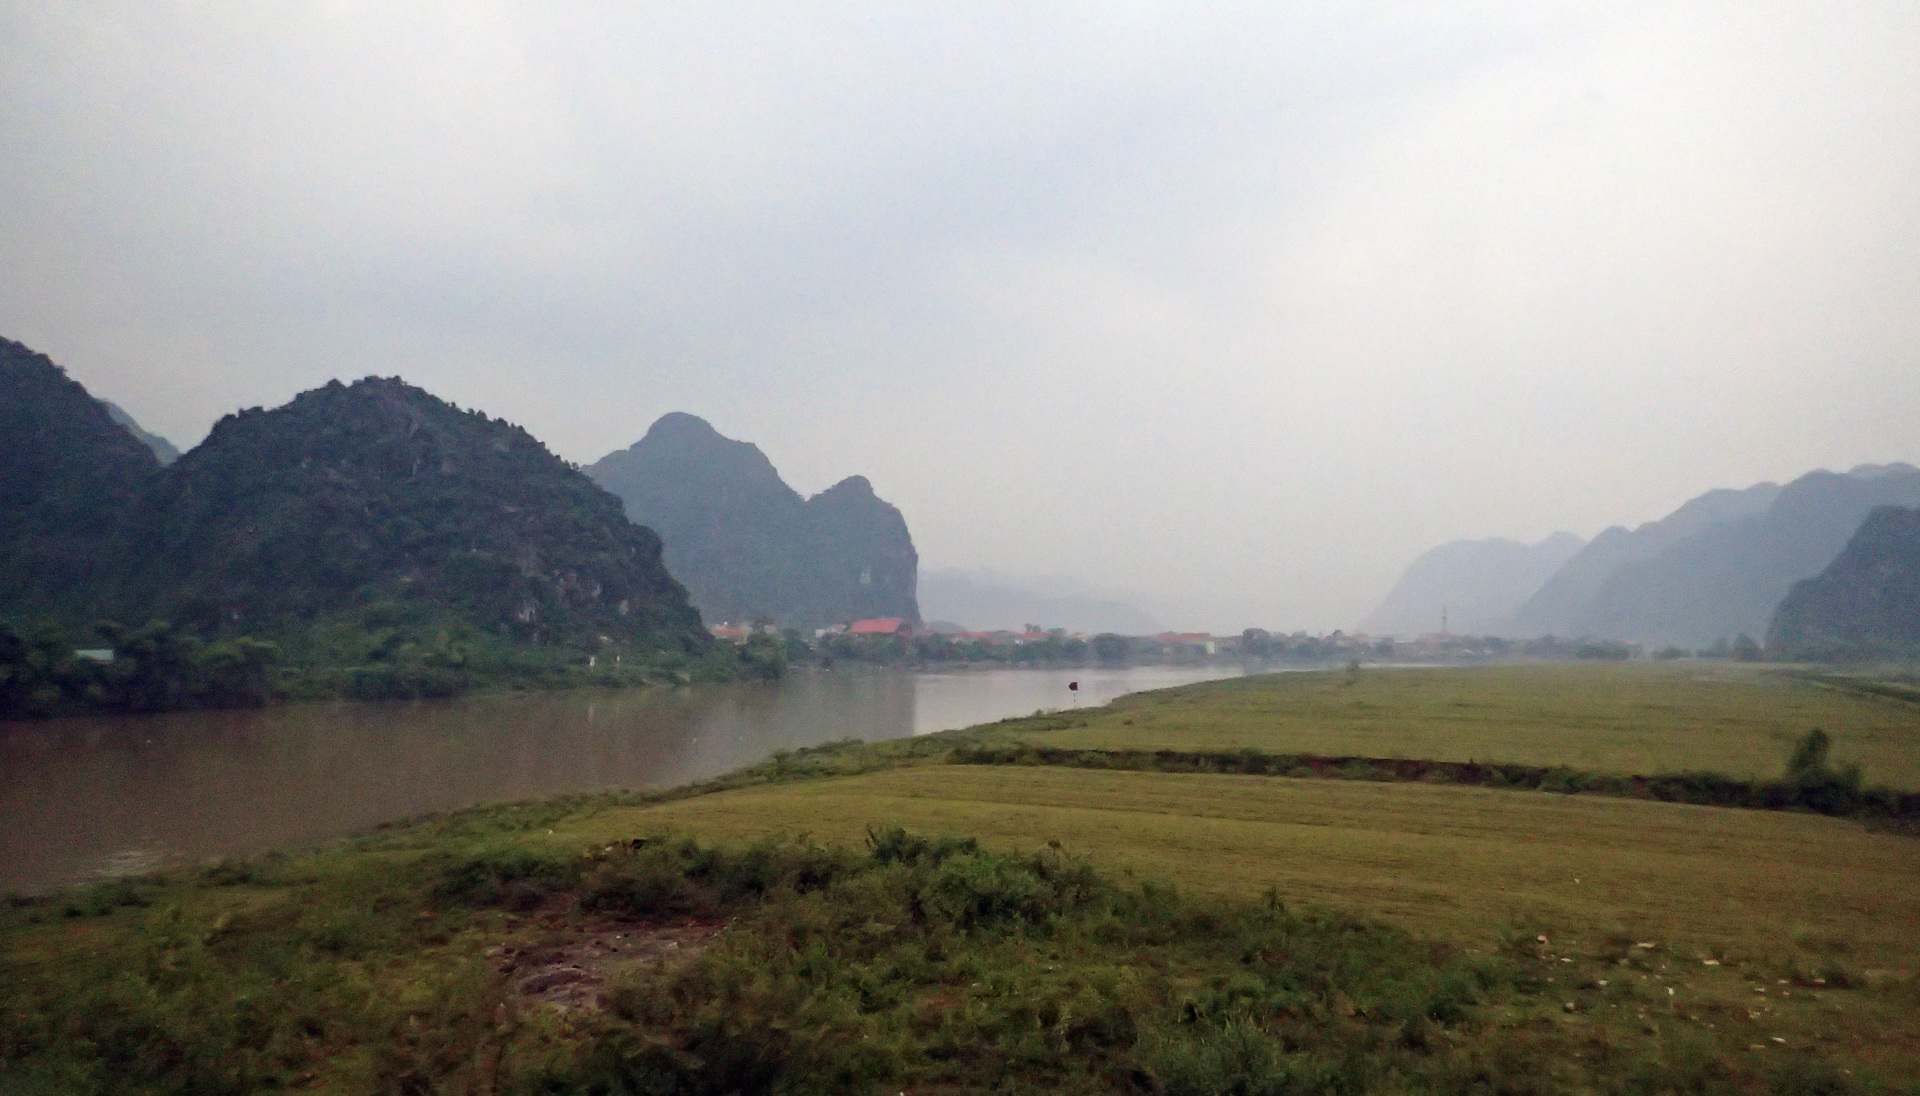 Overlooking the small town of Phong Nha in vietnam